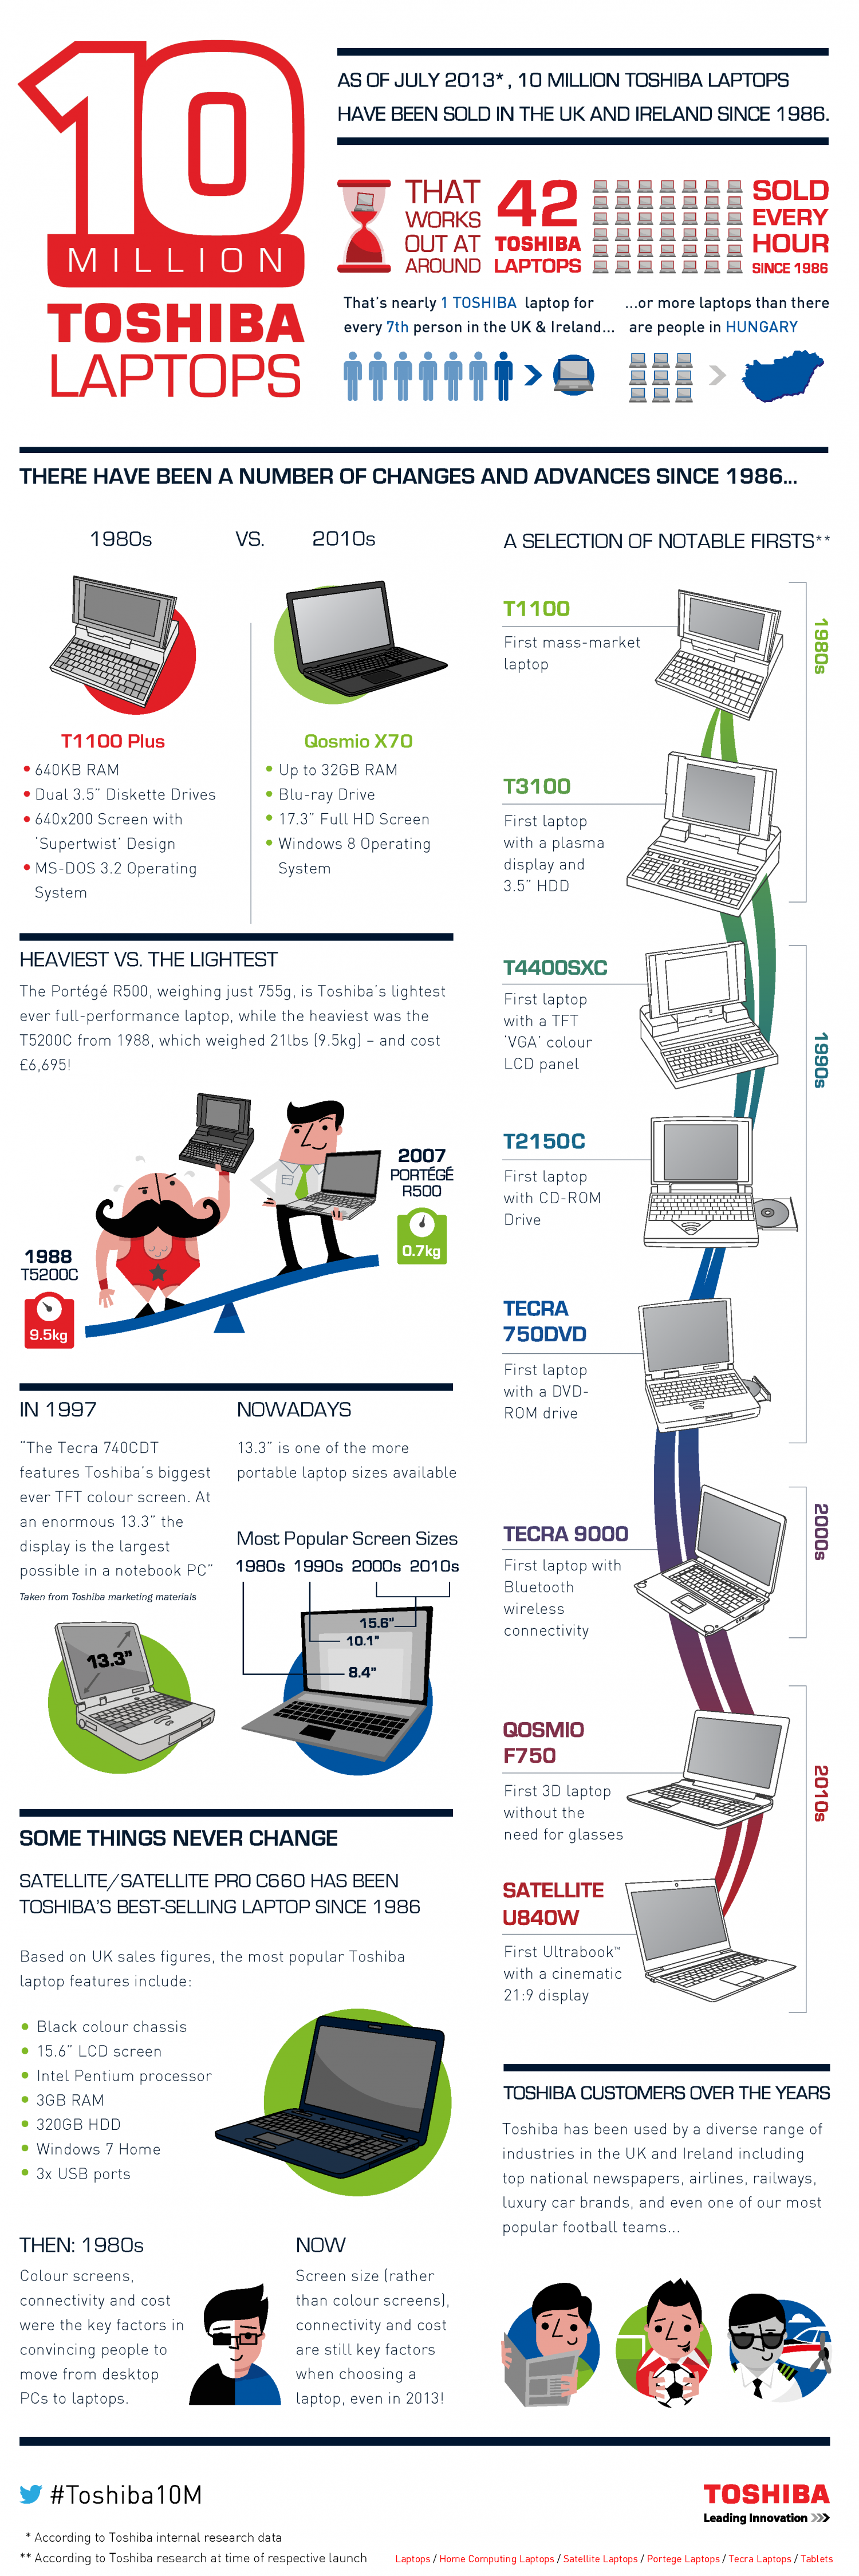 Celebrating 10 Million Toshiba Laptops Infographic